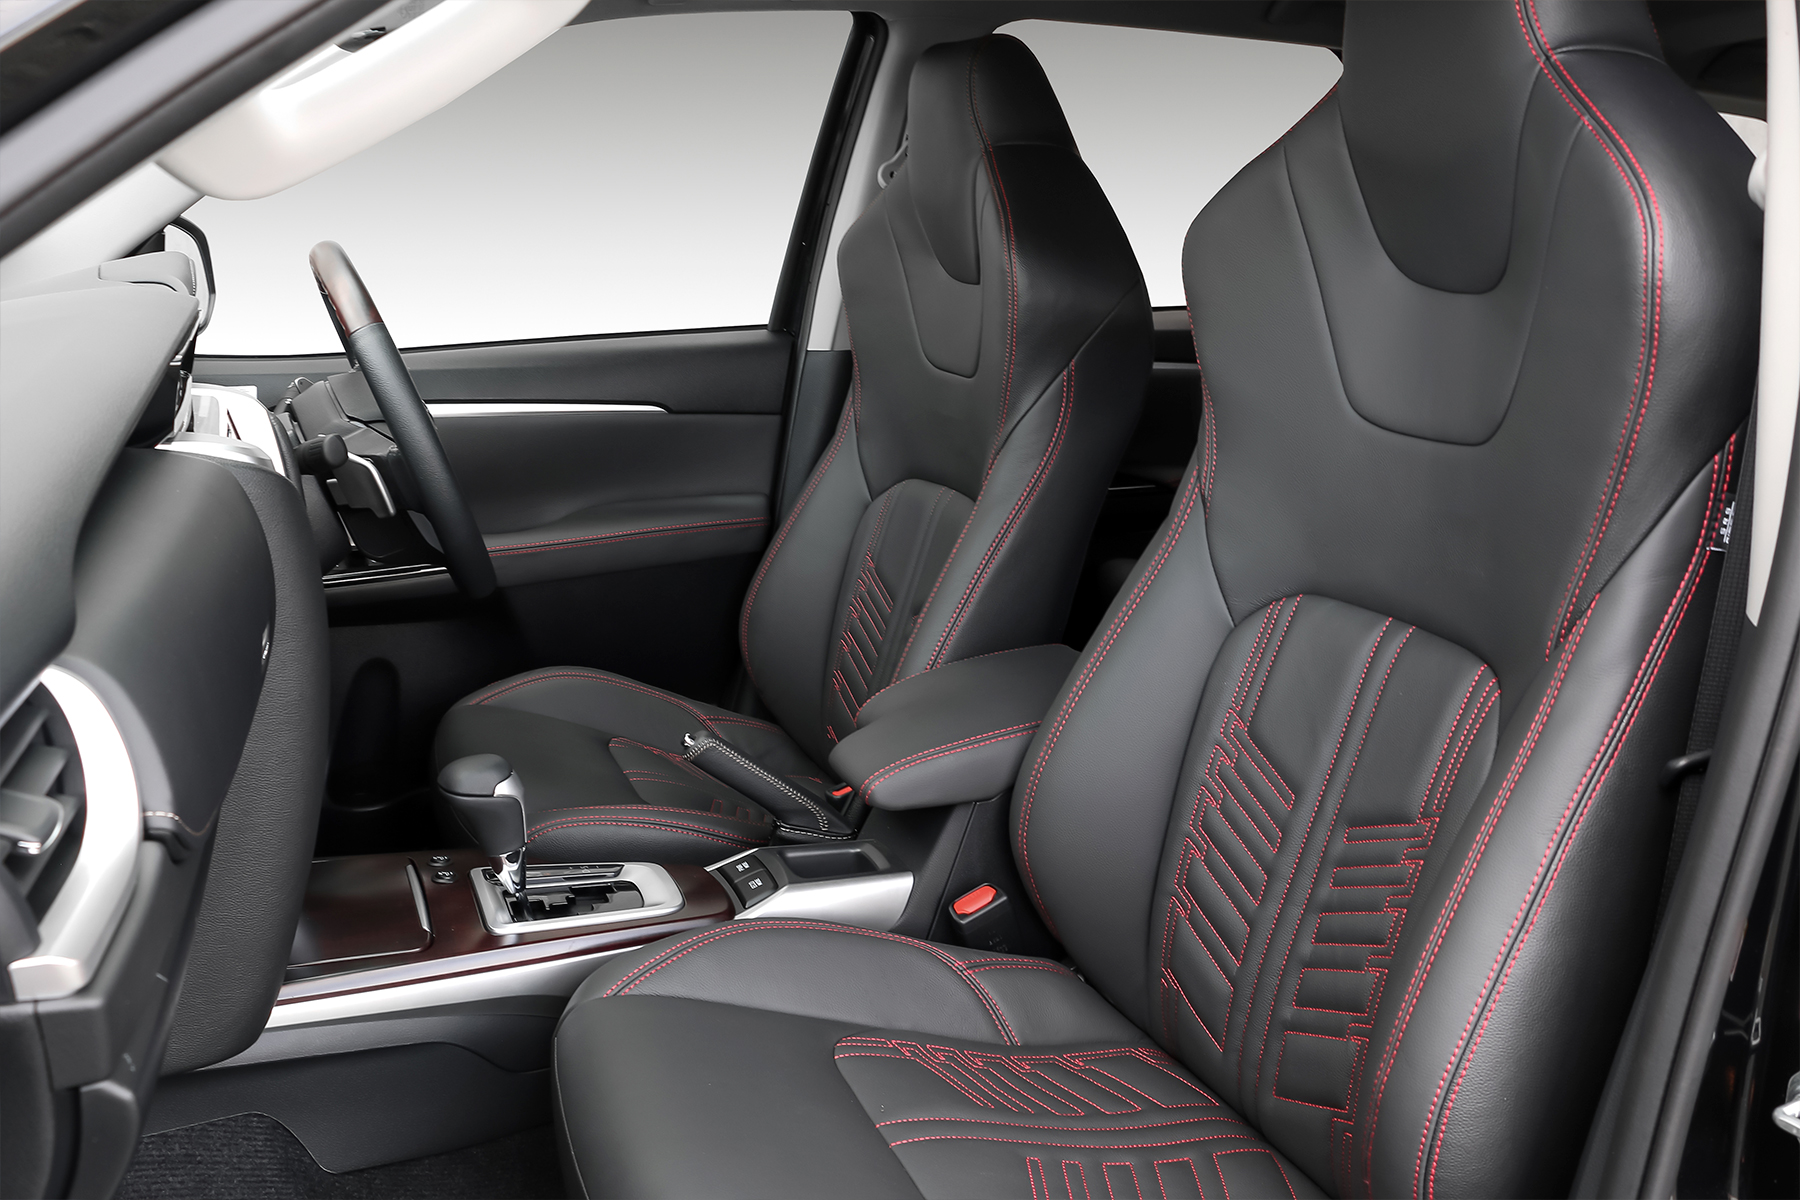 Gladiator interior in black with red stitching